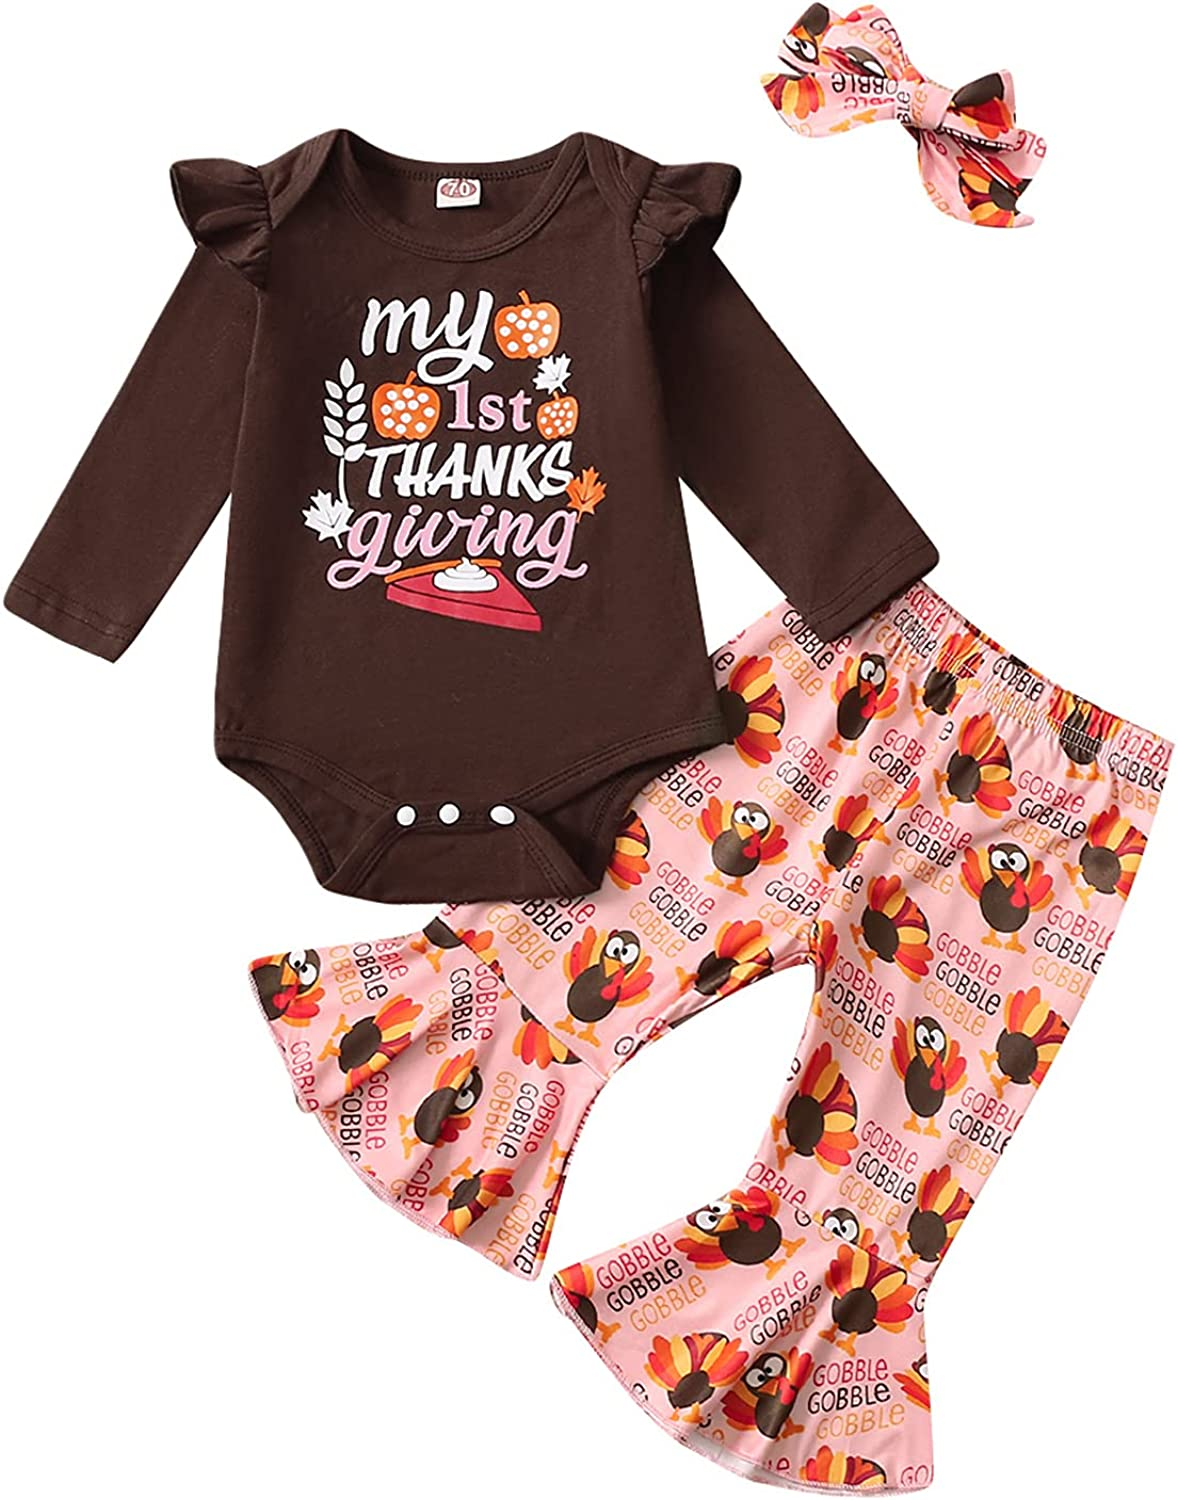 Baby Girl My First Thanksgiving Outfit Baby Thanksgiving Clothes Girl Turkey Outfit